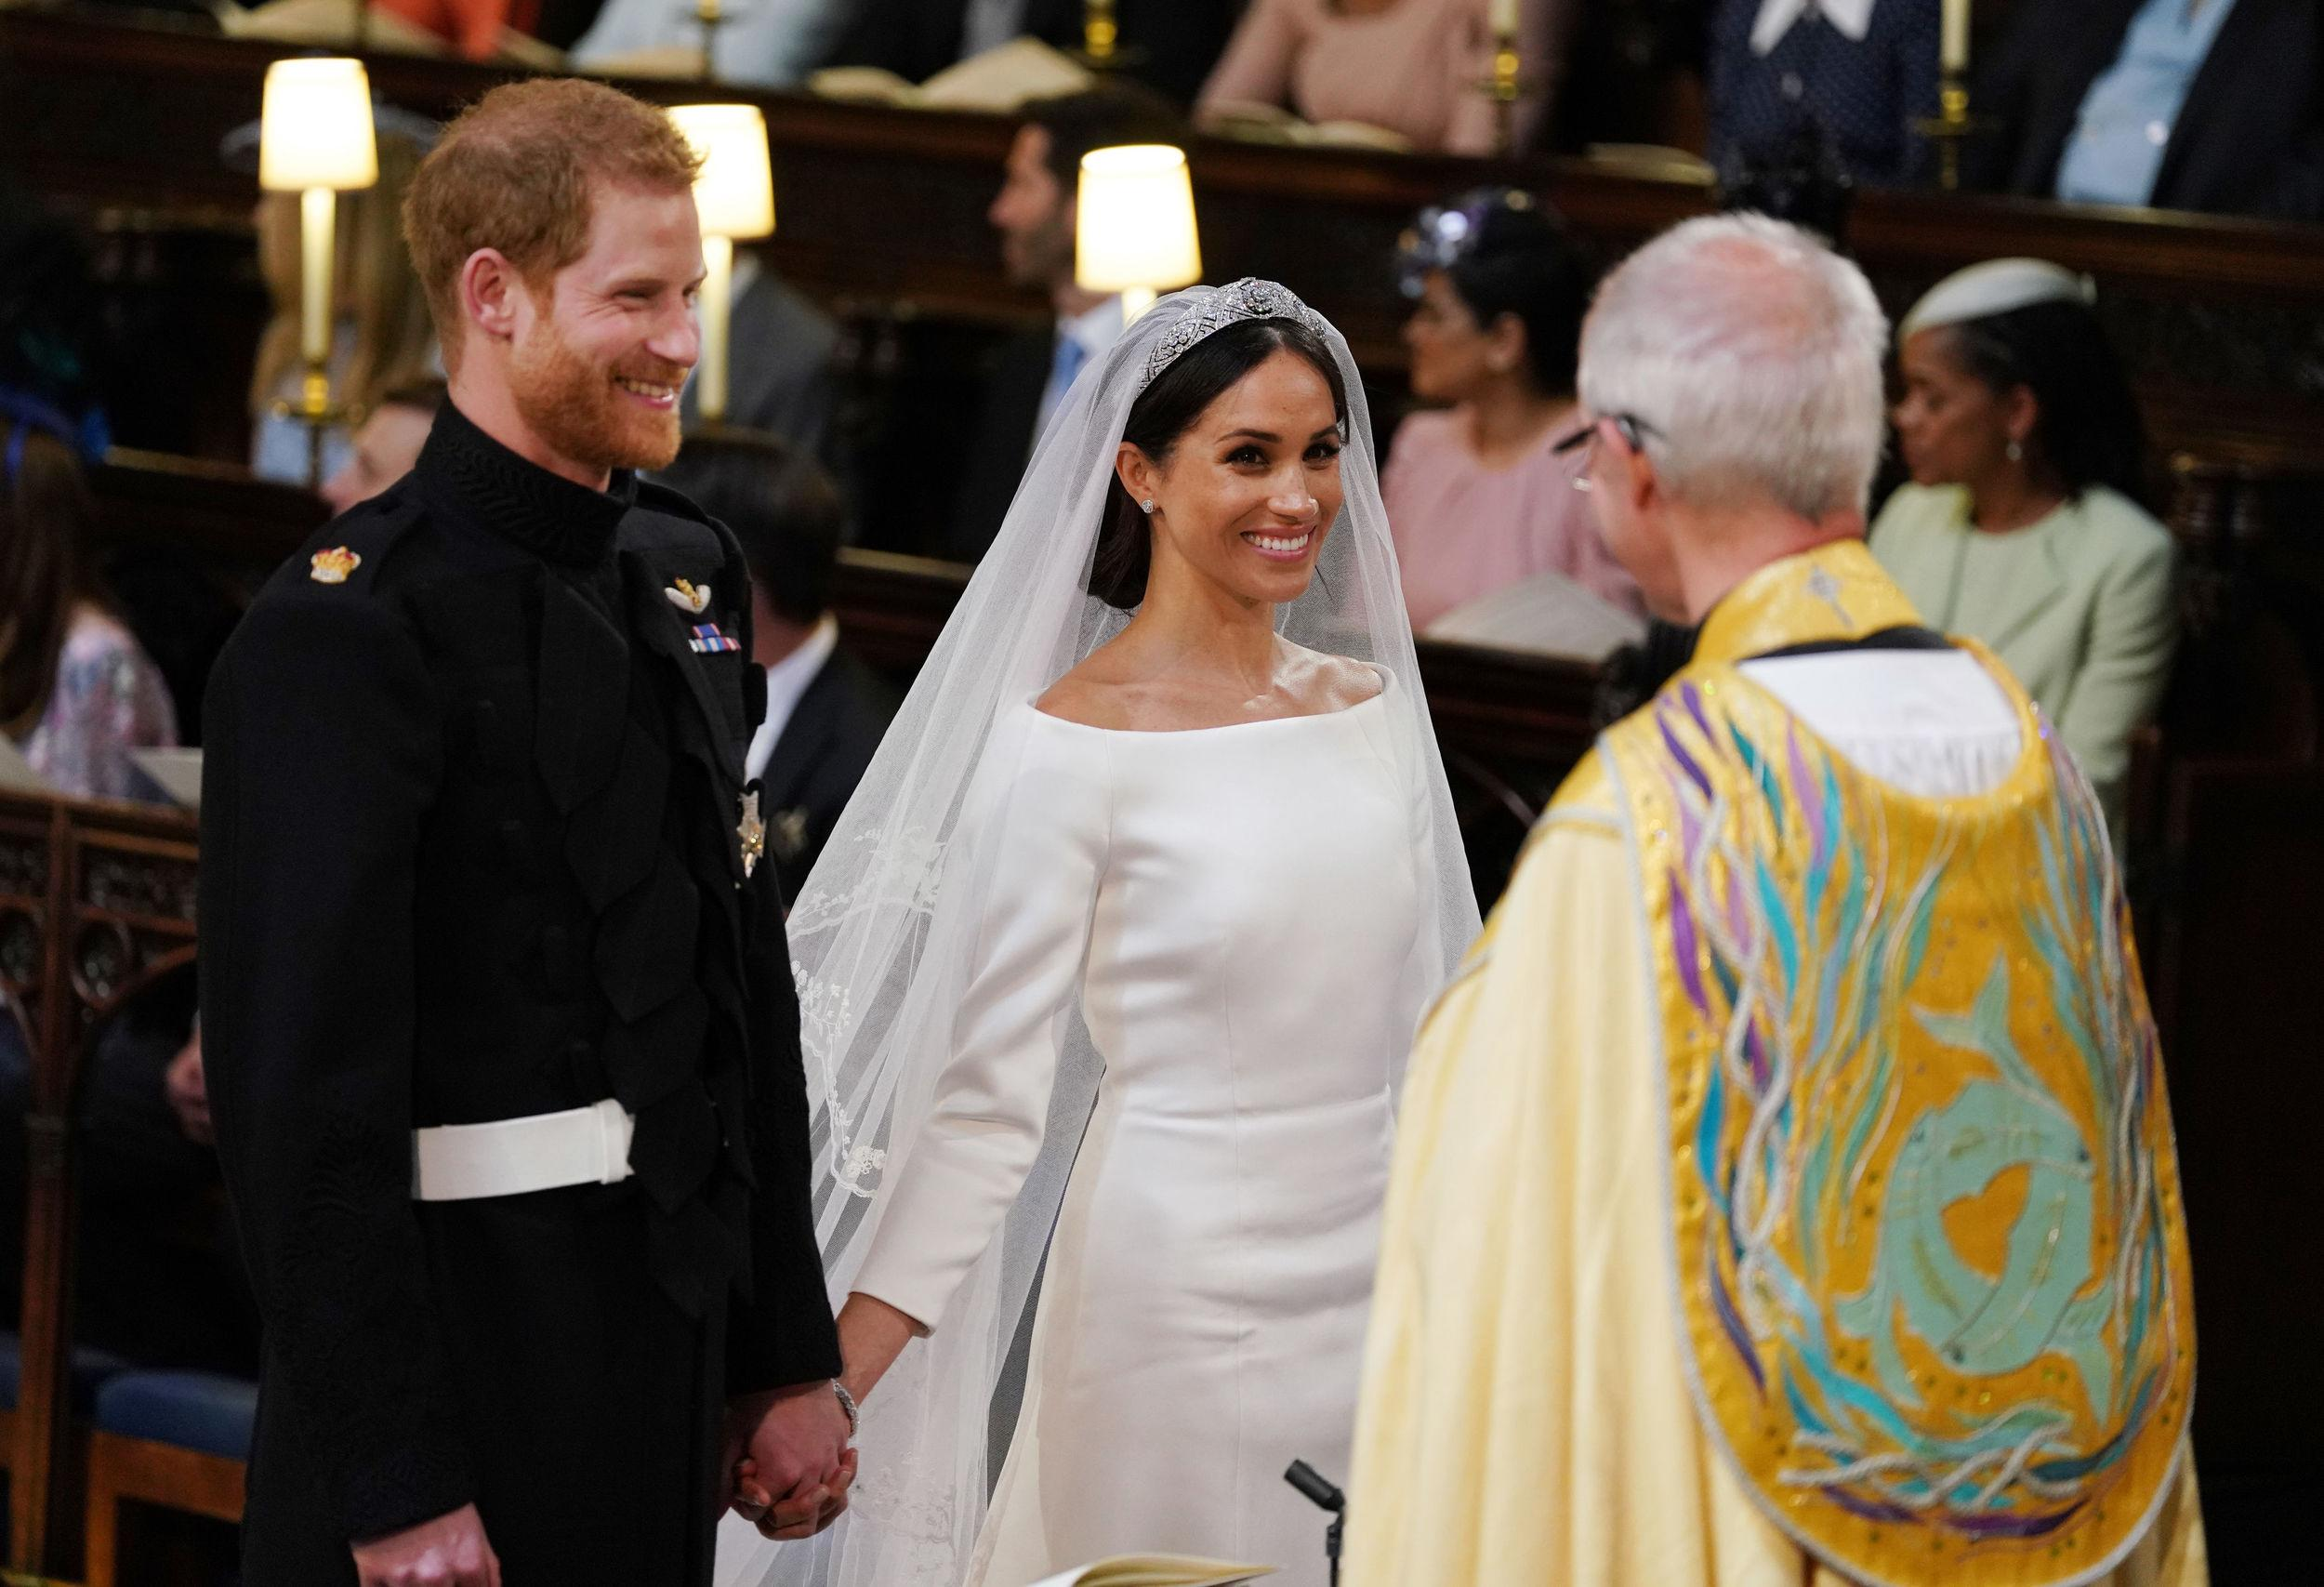 <p>Prince Harry and Meghan Markle during their wedding service, conducted by the Archbishop of Canterbury Justin Welby in St George's Chapel at Windsor Castle on May 19, 2018 in Windsor, England.</p>  <p>(Photo by Dominic Lipinski - WPA Pool/Getty Images)</p>